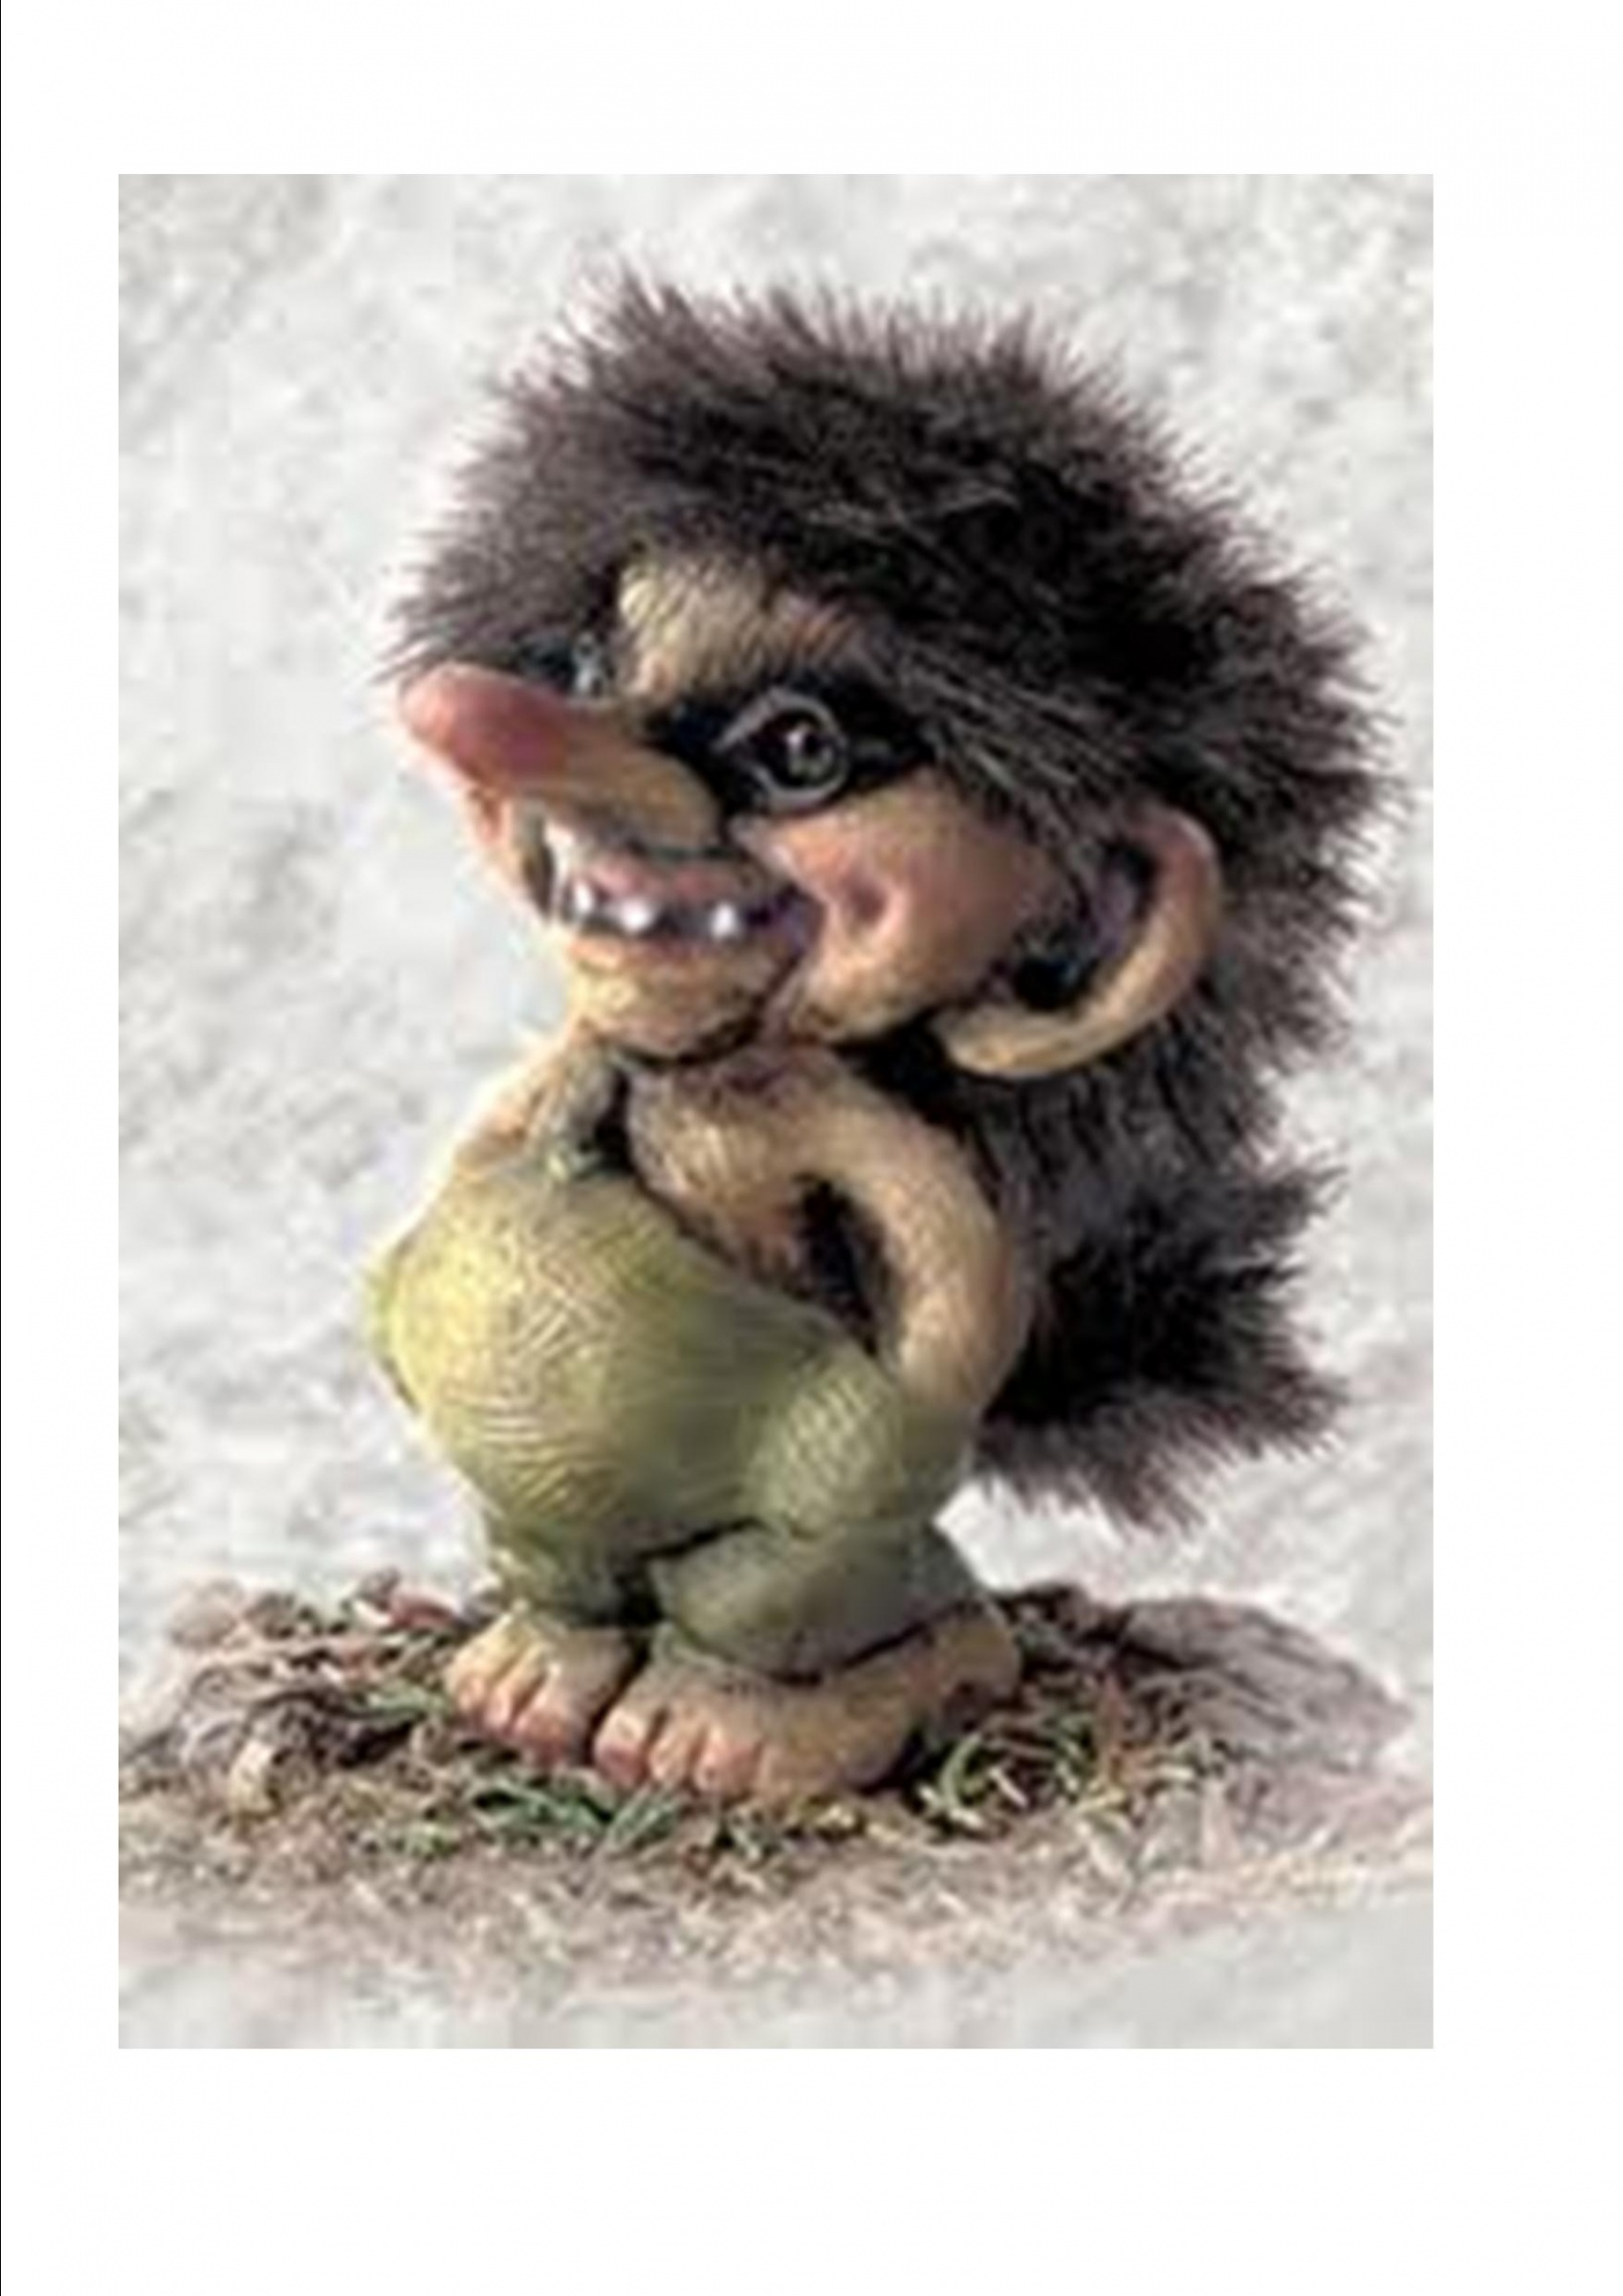 Click image for larger version  Name:troll.jpg Views:87 Size:510.8 KB ID:4566